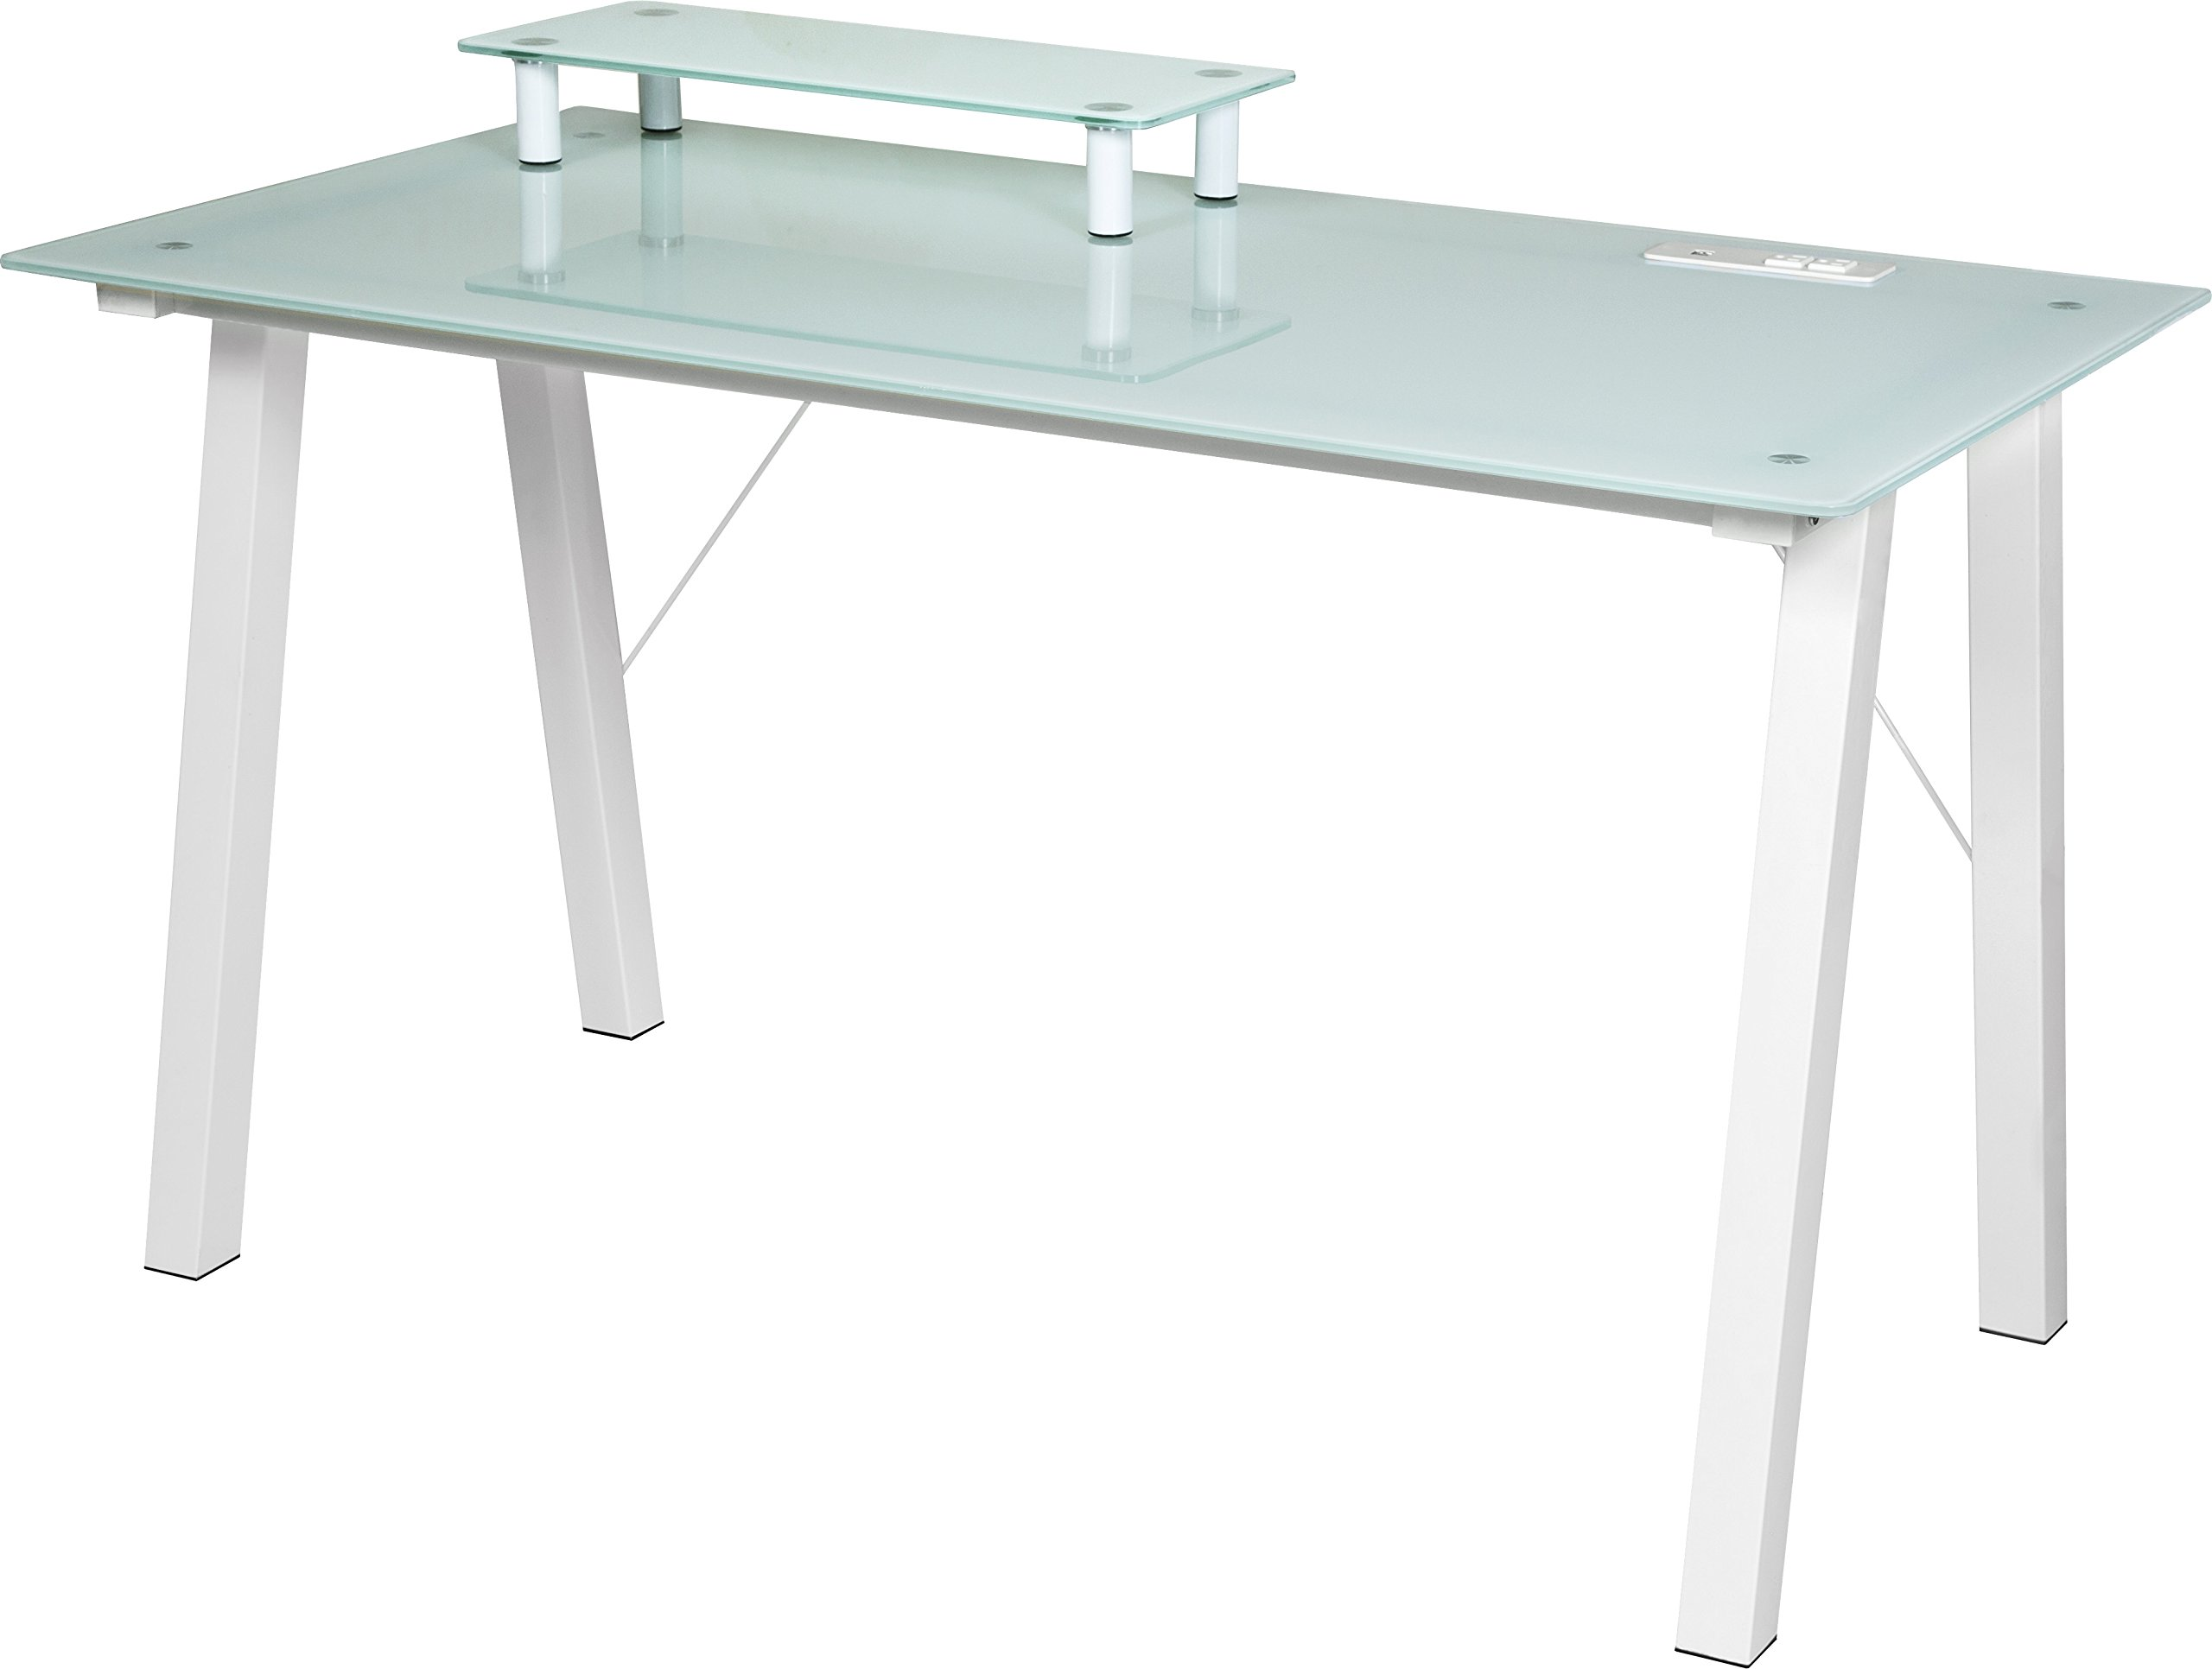 OneSpace Simply Glass Desk with USB and A/C Charging and Desktop Printer Stand, Aqua and White by OneSpace